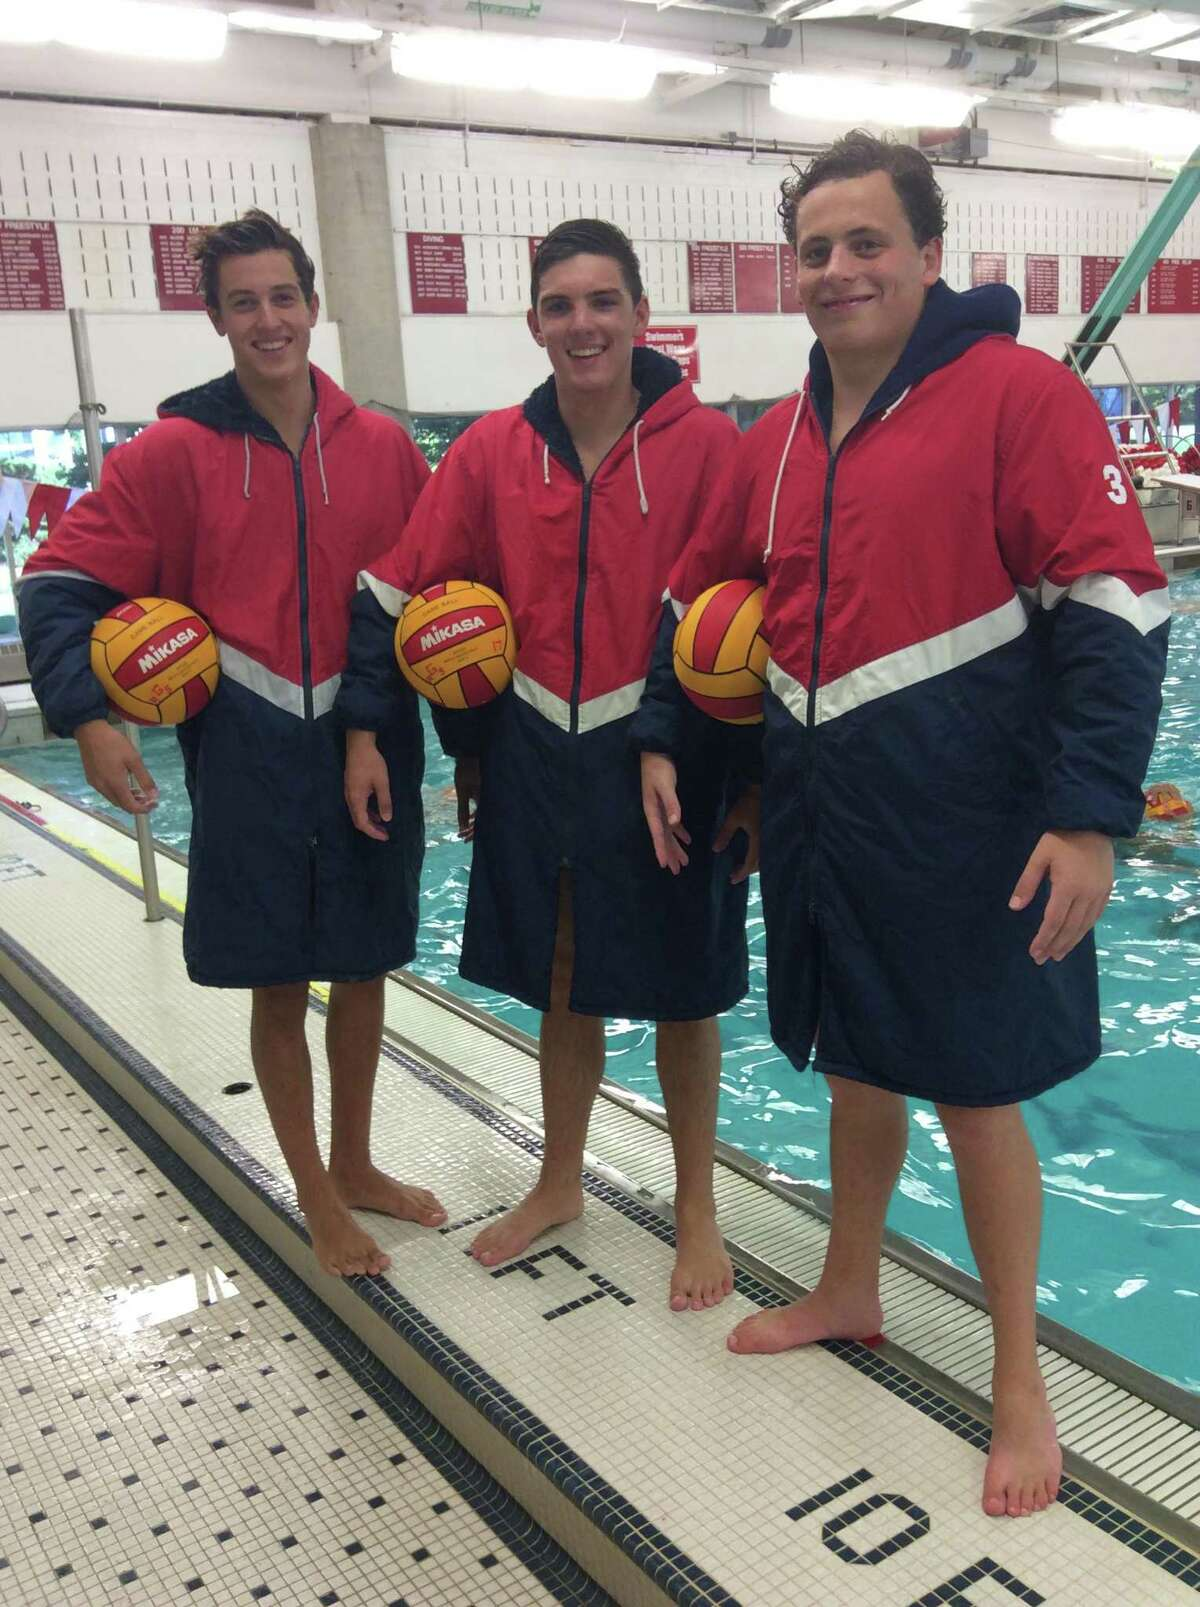 From left to right, Niki de la Sierra, Kyle Laufenberg and Tegan D'Agostino are senior captains on the Greenwich High School water polo team. September 4, 2018